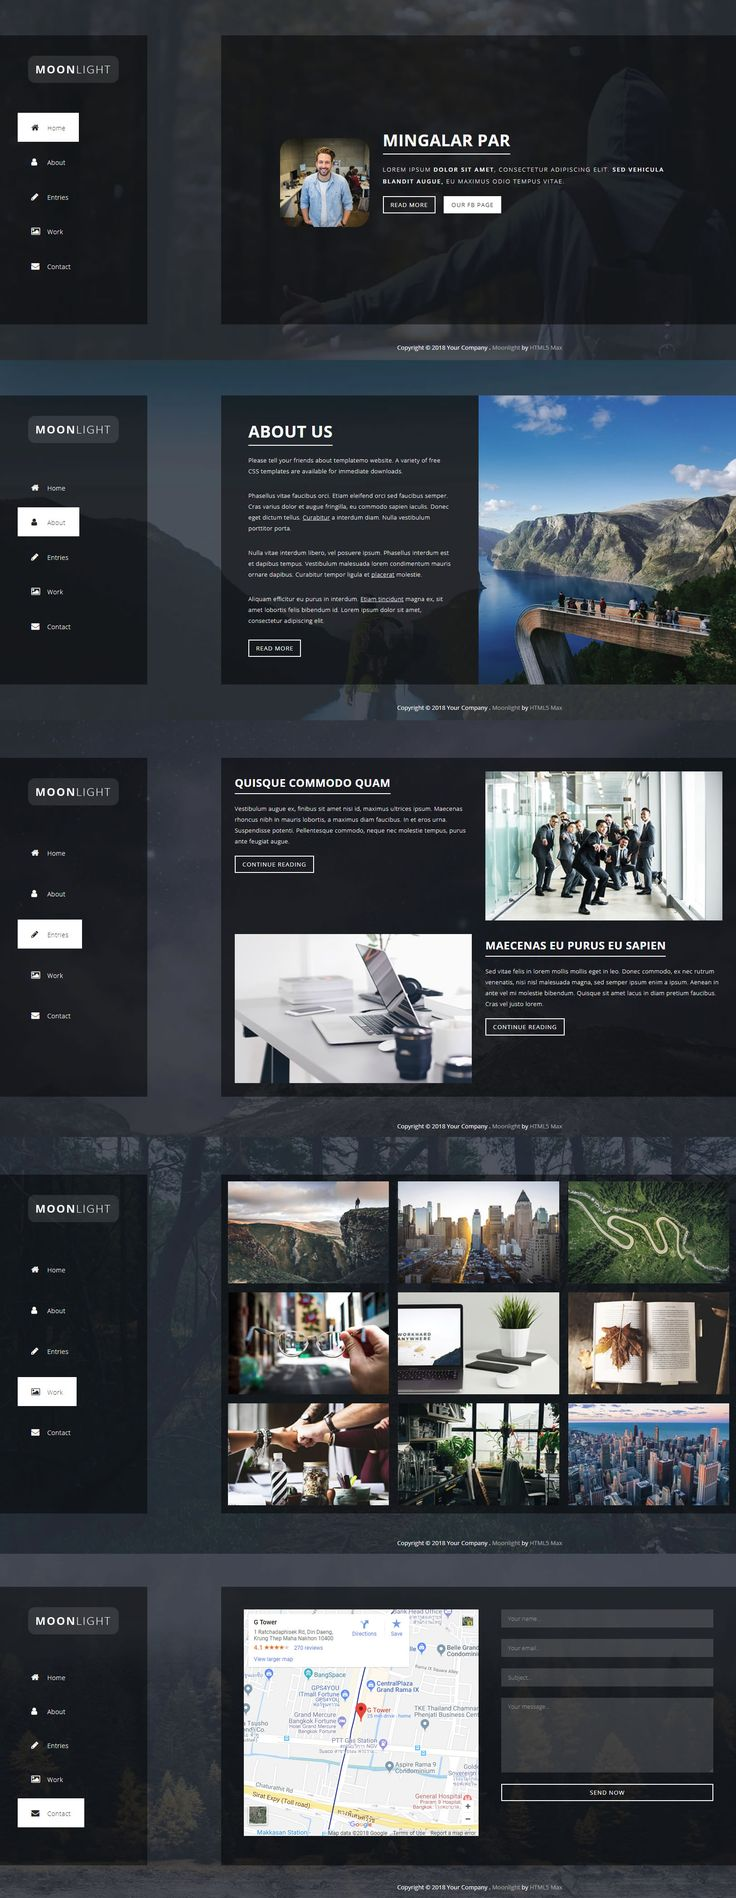 14 best Free html templates images on Pinterest | Role models ...